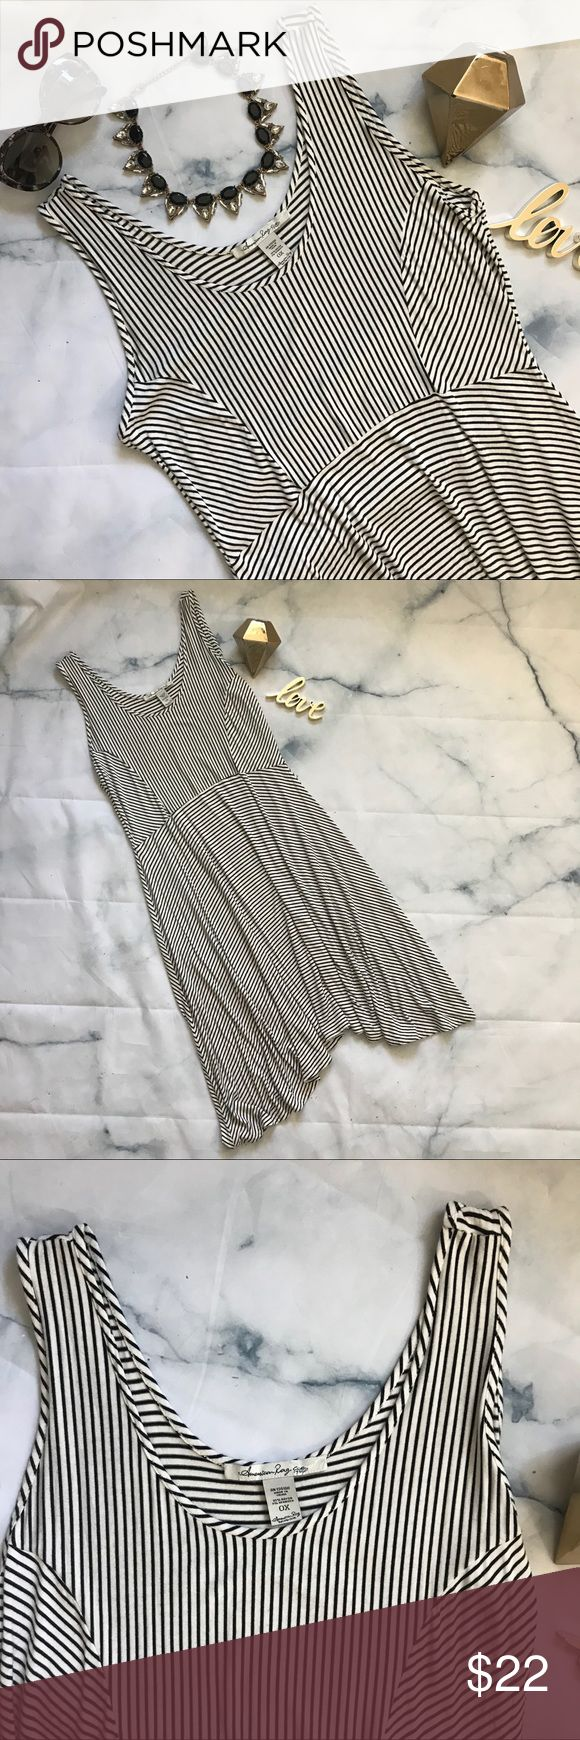 American Rag Striped Dress Super soft black and white striped dress with shark bite hemline. This would be so cute with a jean jacket, your favorite sunnies and some flats or sneaks. Casual weekend, brunch with friends, day date, very versatile. EUC     No visible signs of rips, stains or damage.         🖤🖤No trades, No modeling🖤🖤                         Pet friendly home. American Rag Dresses